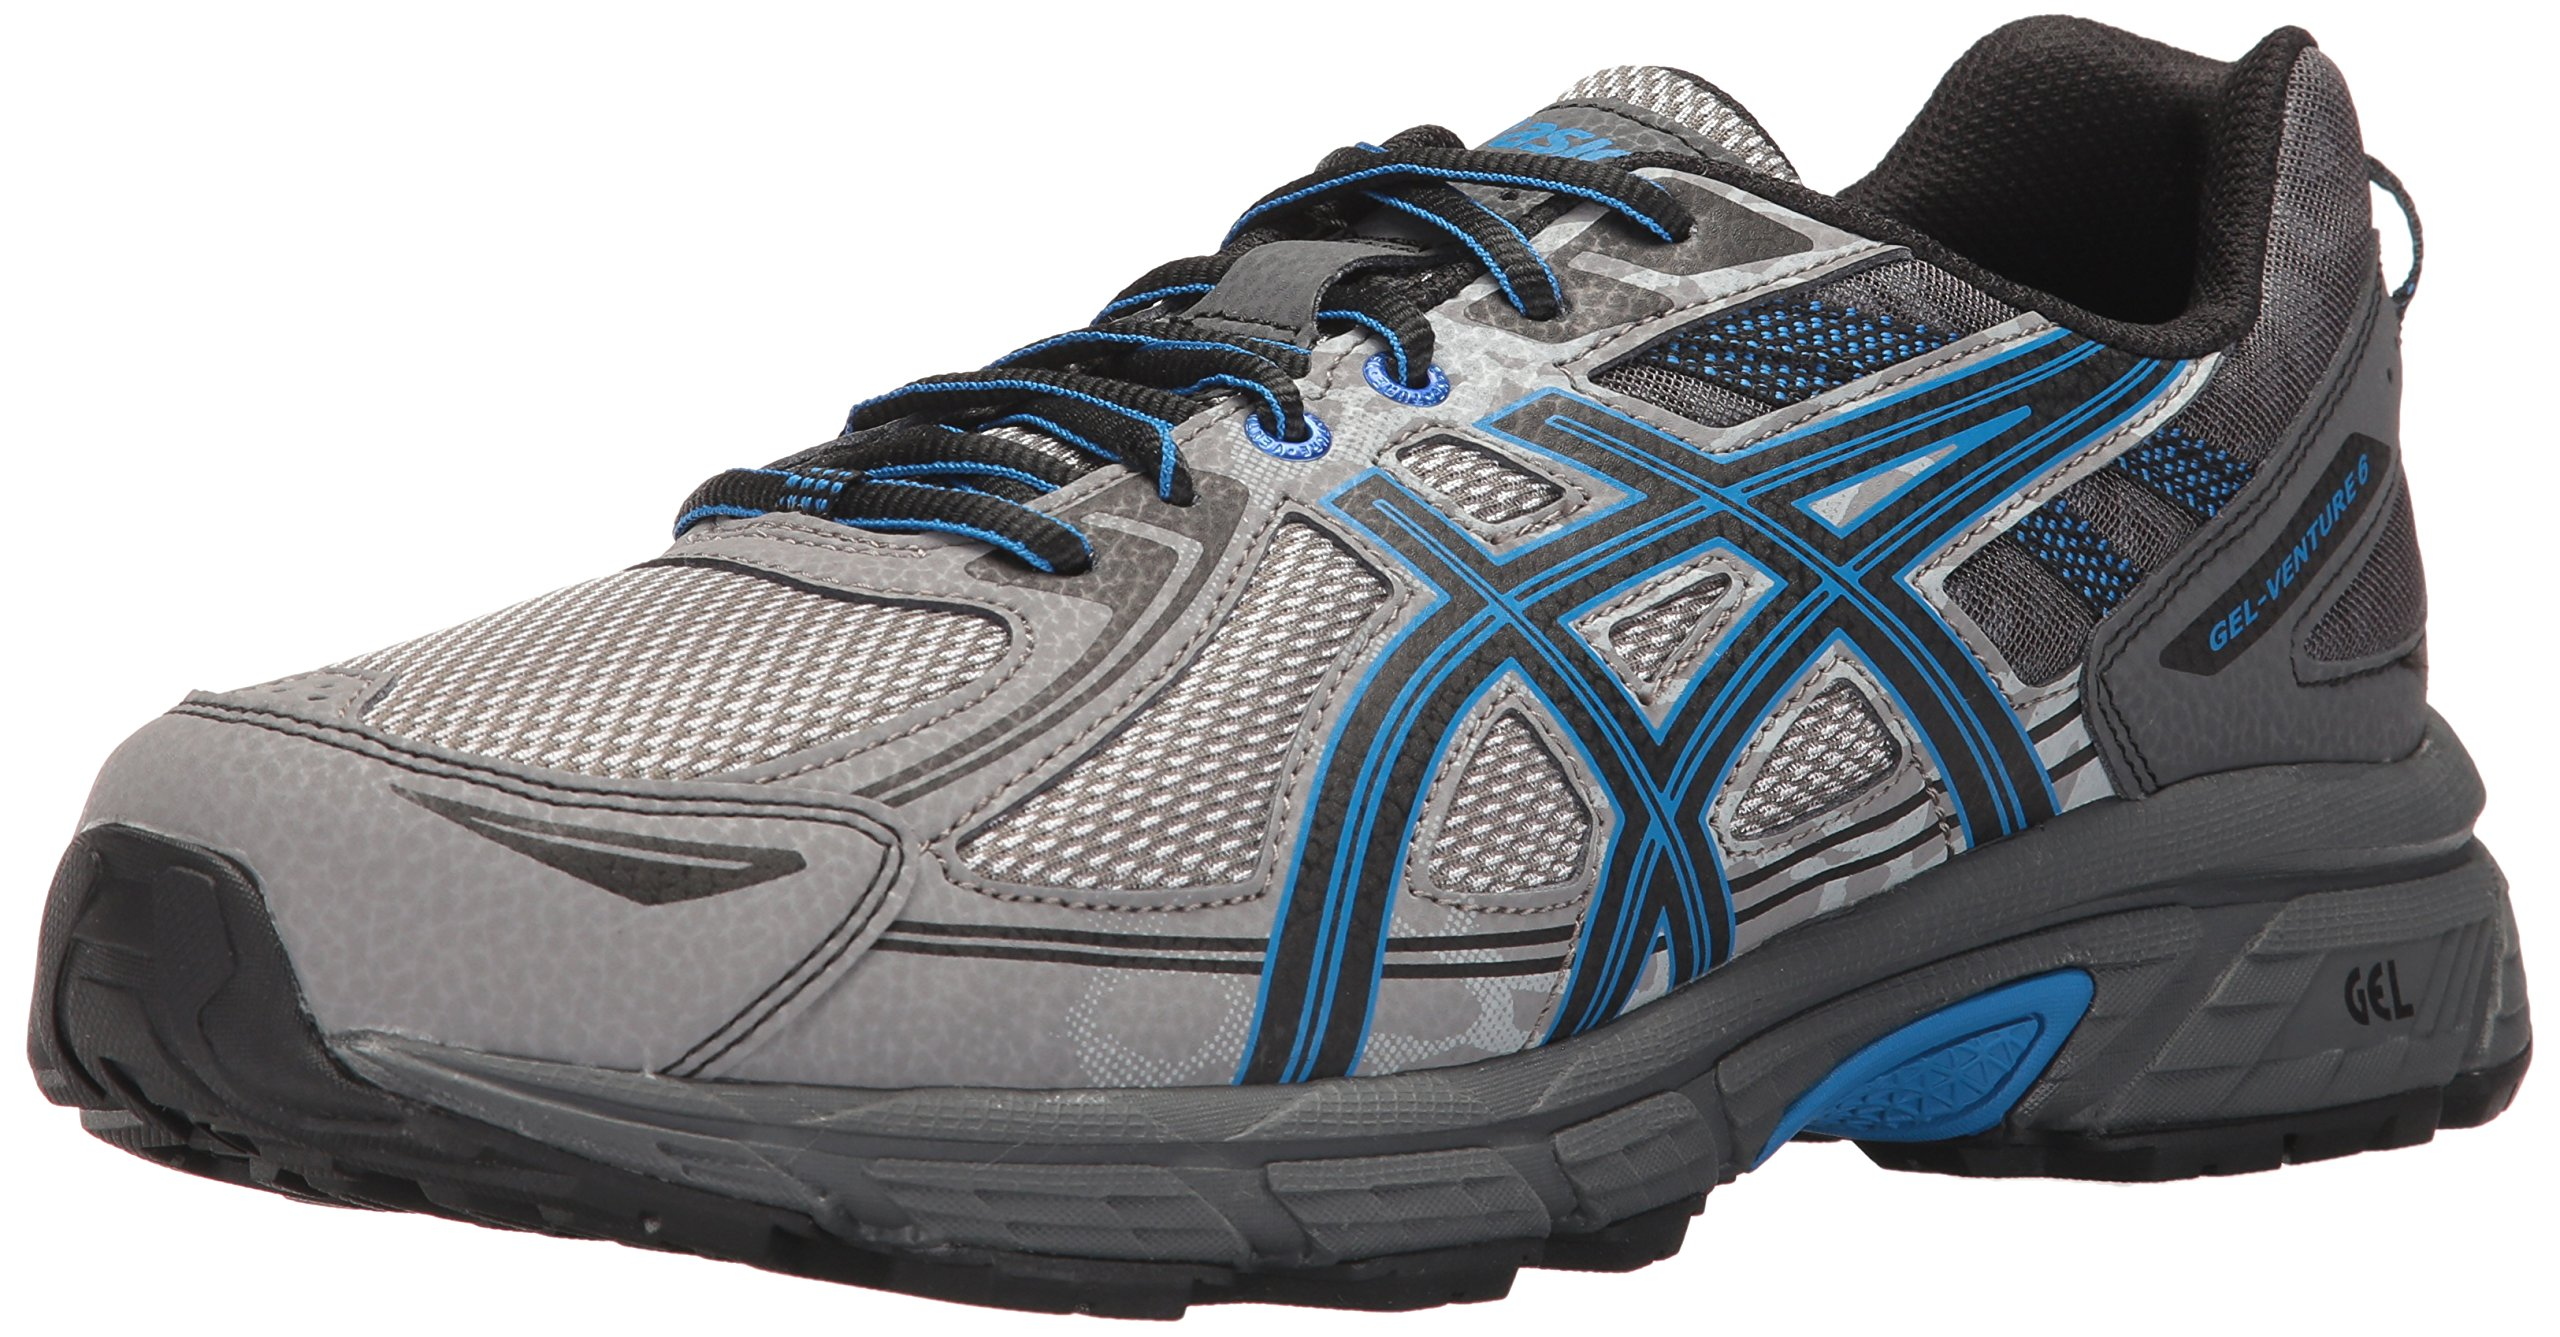 ASICS Mens Gel-Venture 6 Running Shoe, Aluminum/Black/Directoire Blue, 10.5 4E US by ASICS